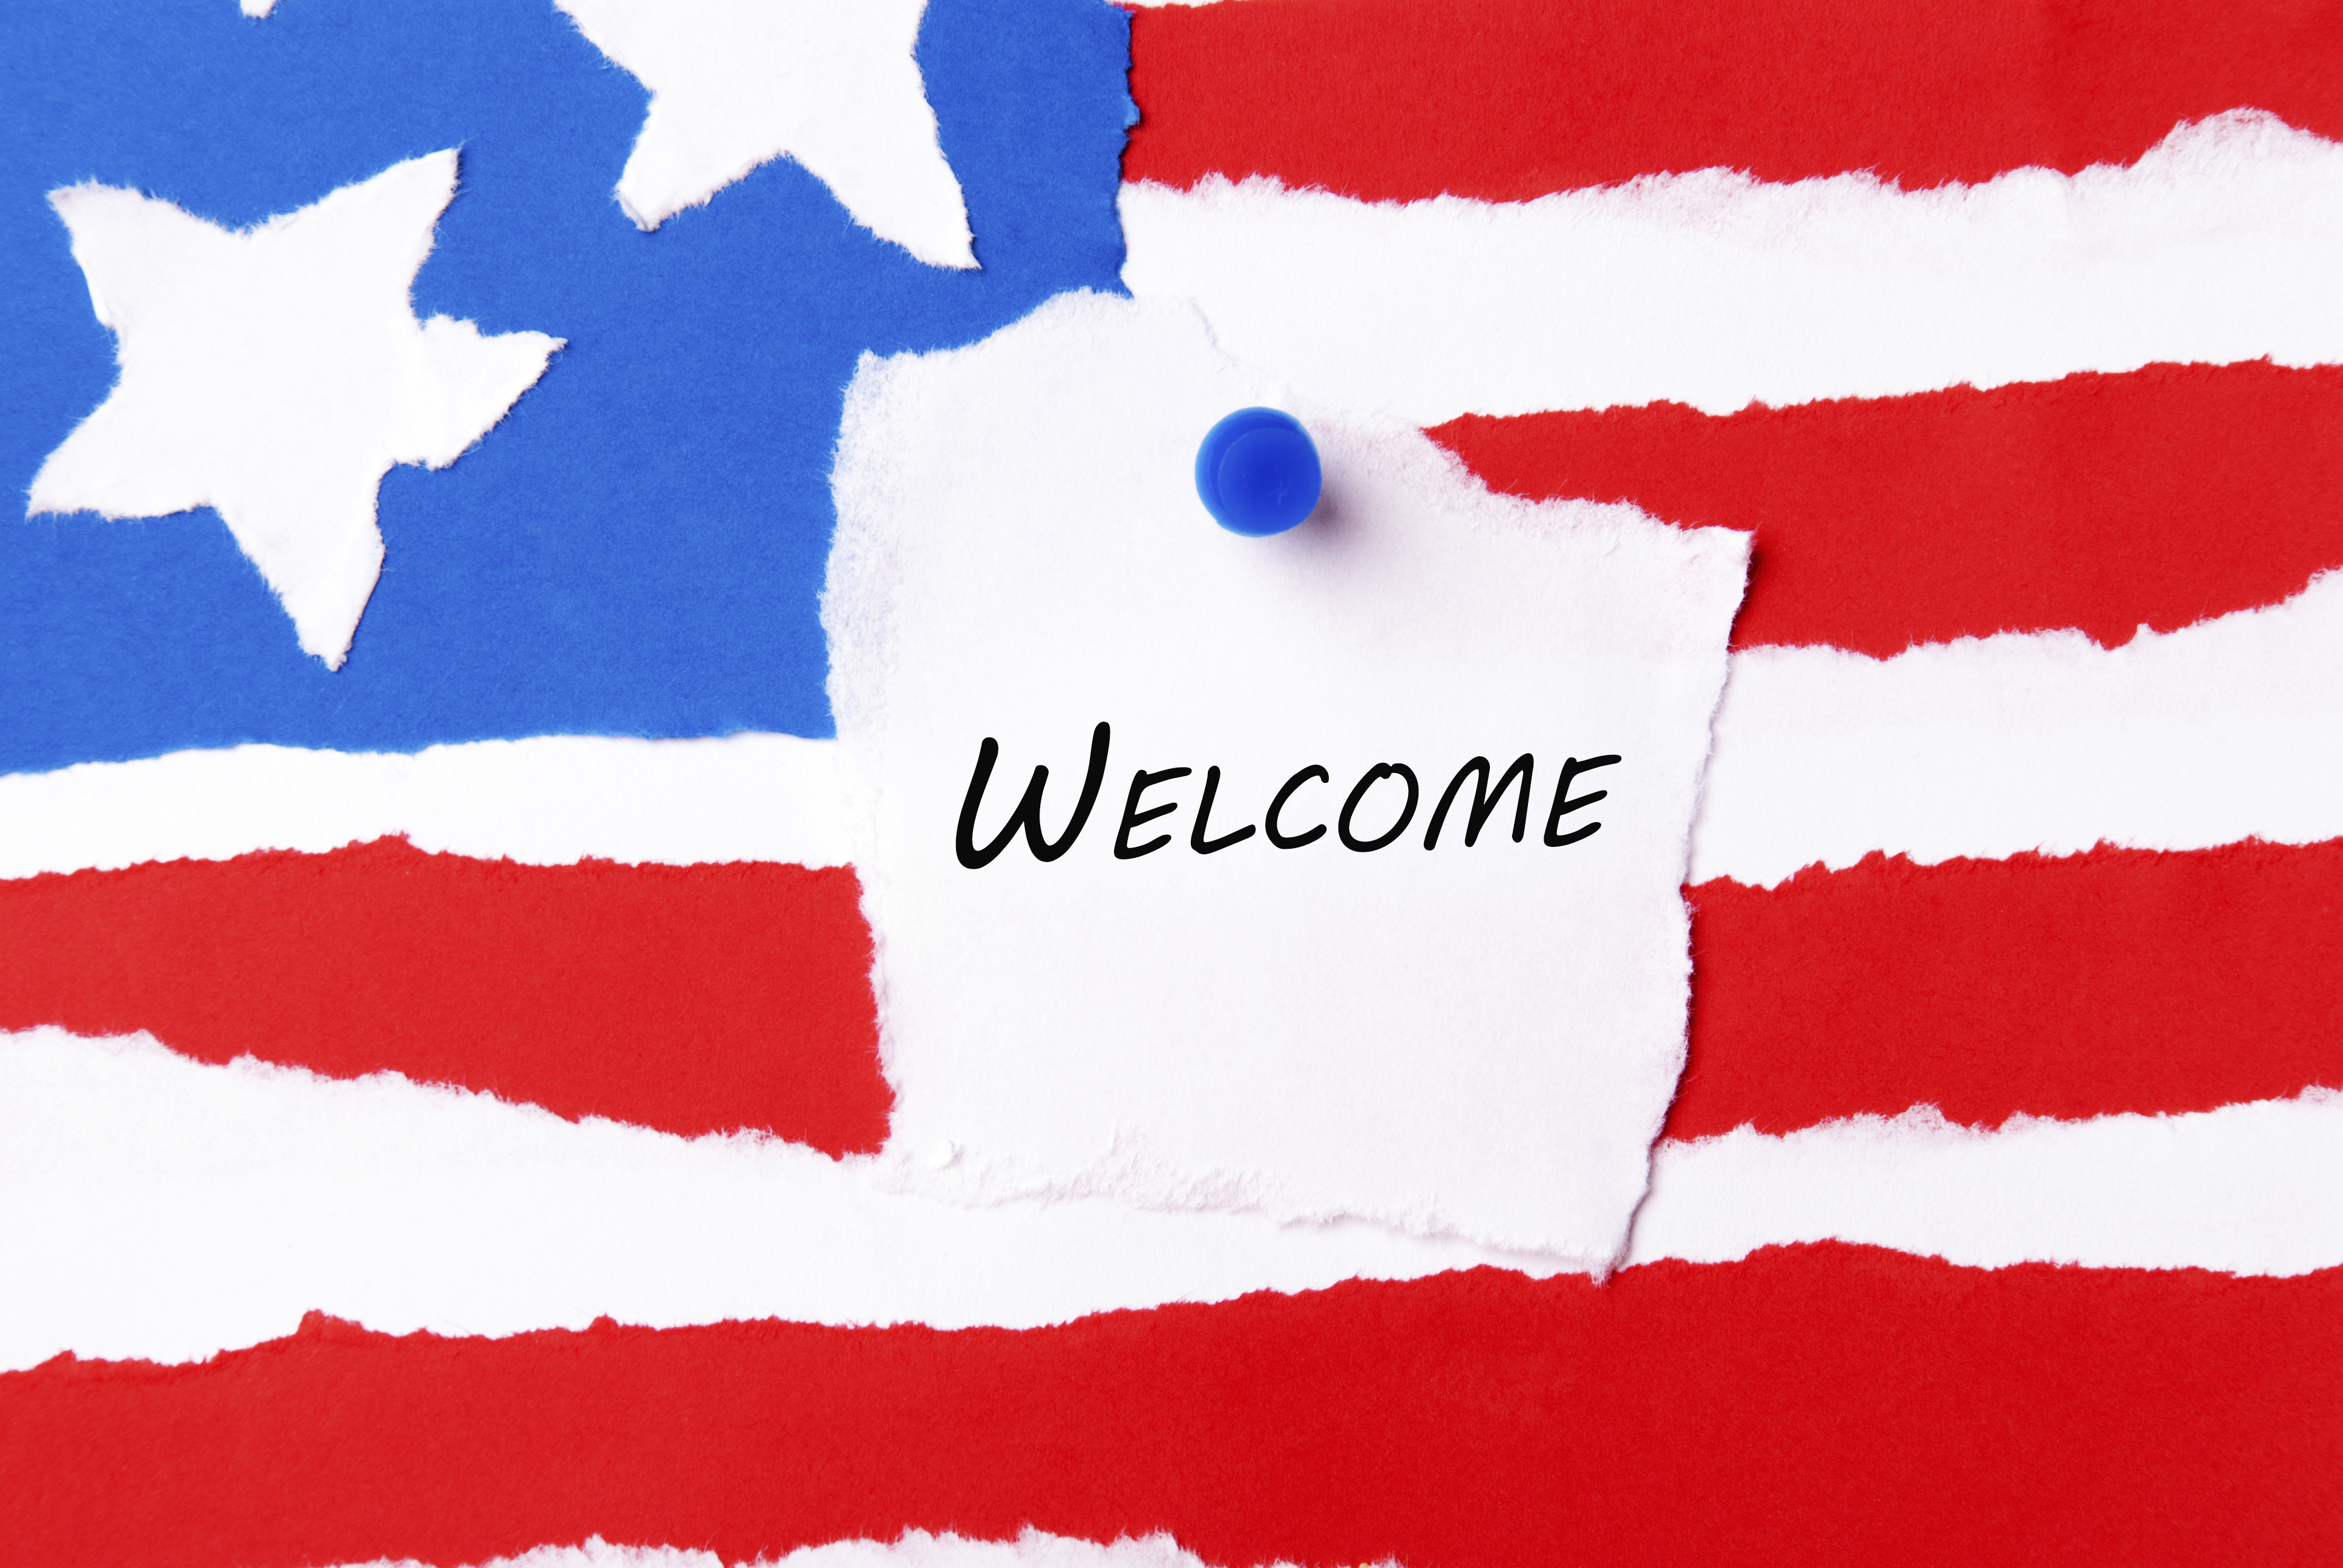 Welcome Note on an American Flag Background